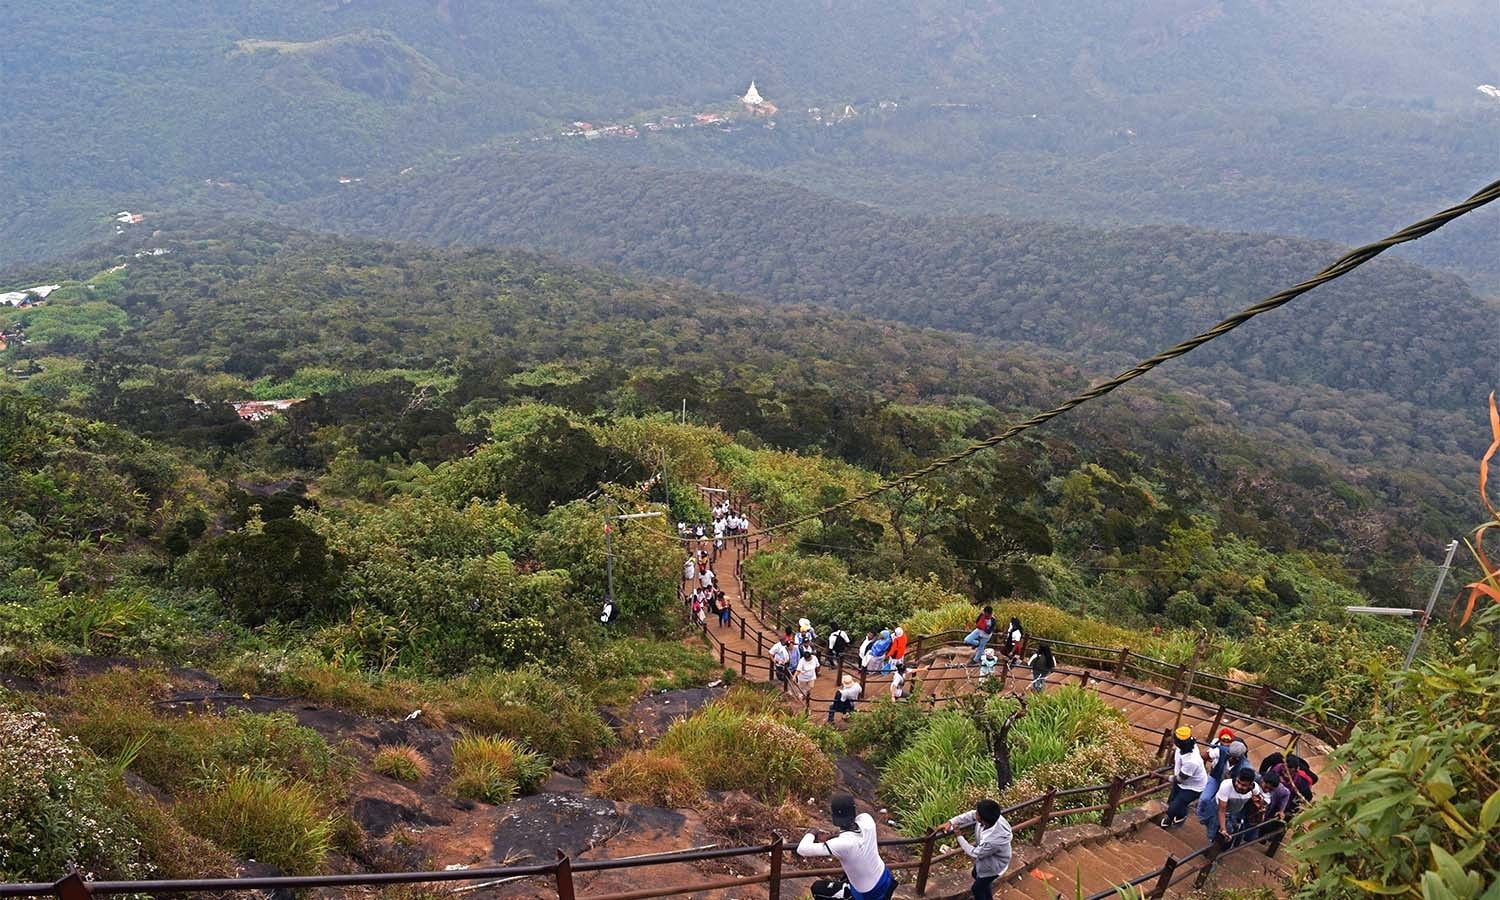 Visitors on the way to Adam's Peak on a route traversing between tea plantations. ─Photo by the author